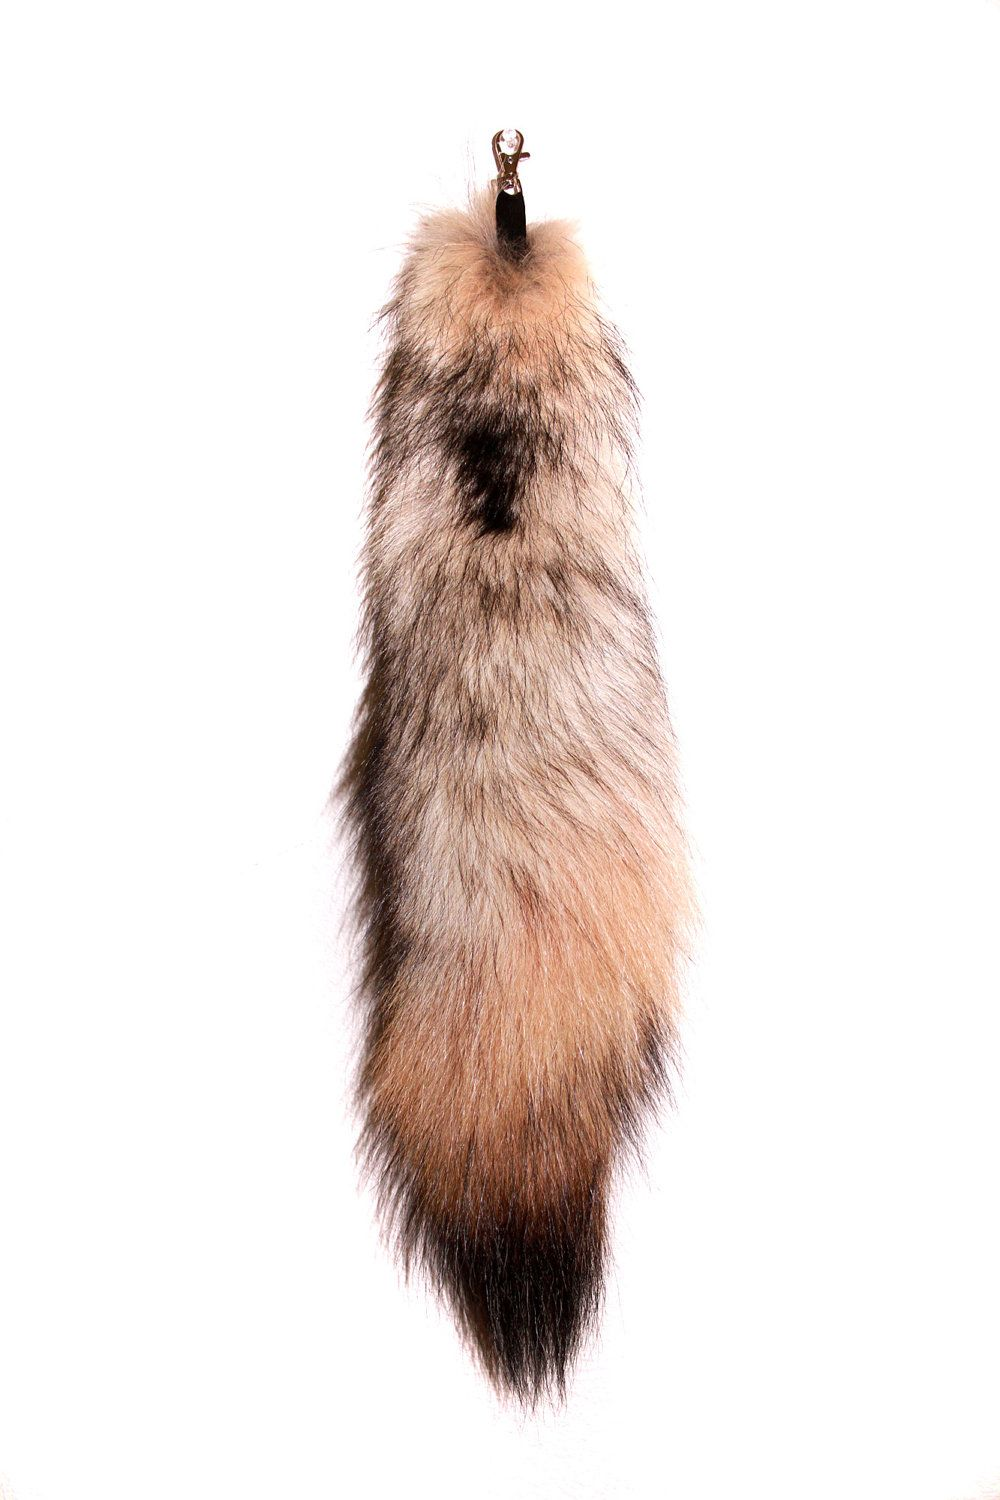 timber wolf tail - Google Search